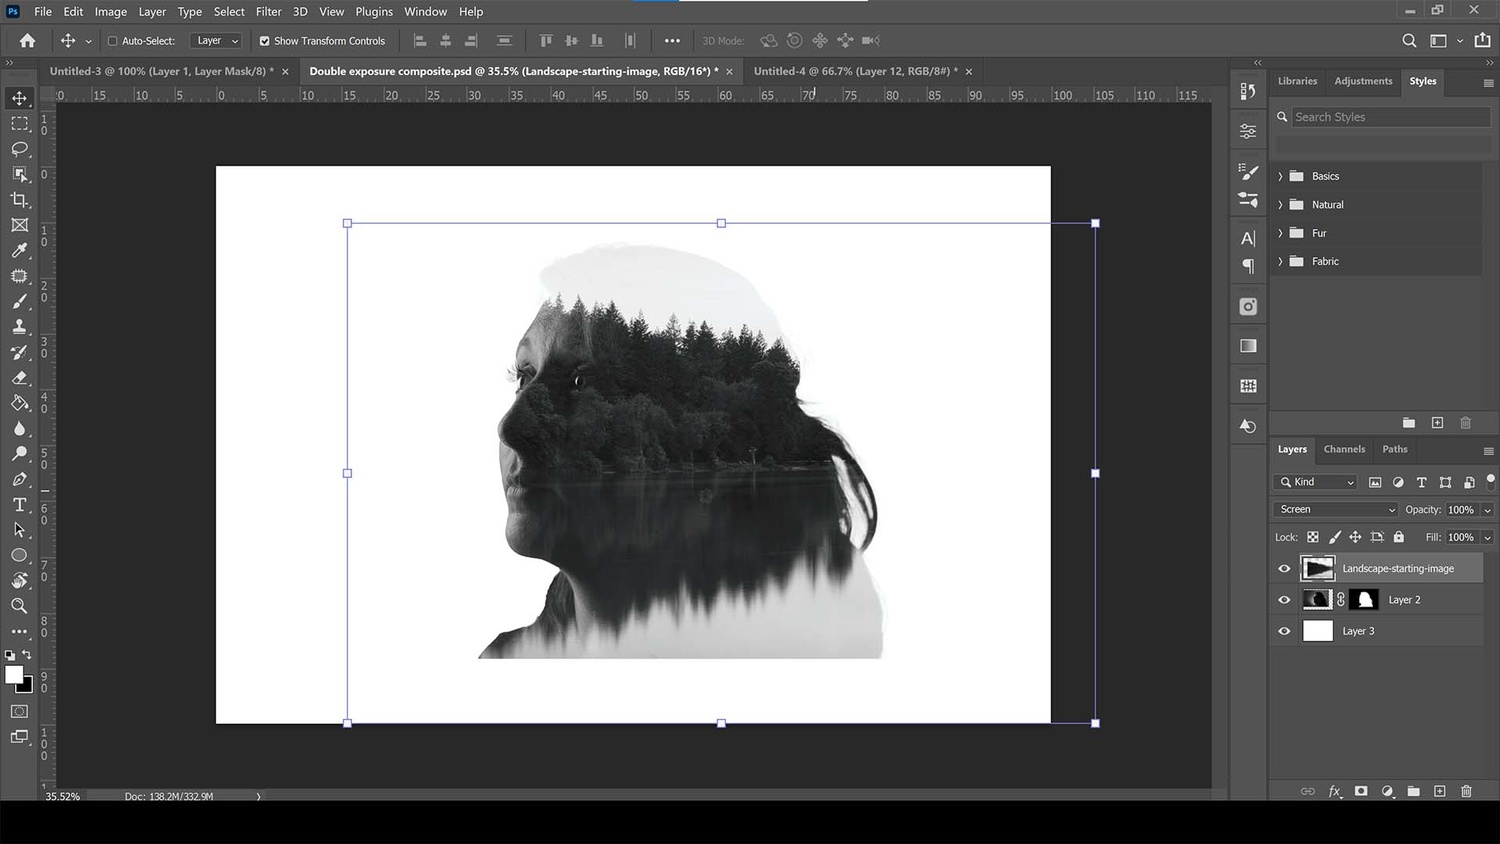 Converting landscape photo to black and white and repositioning it atop the portrait